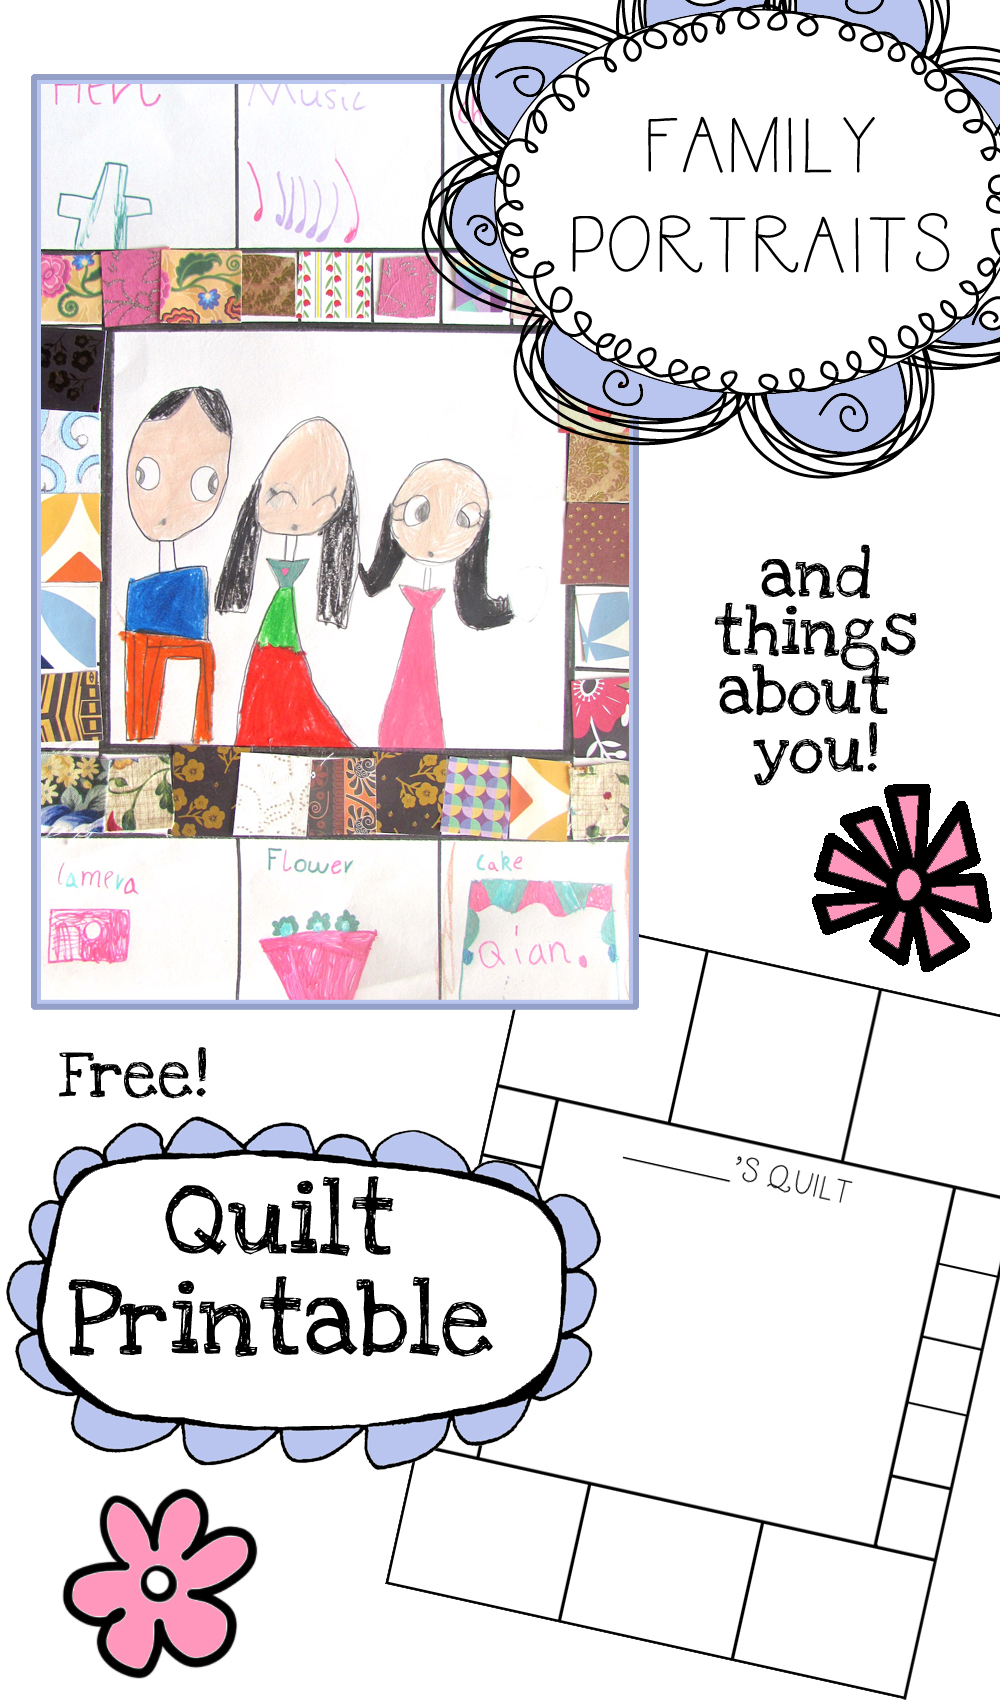 It's just a picture of Free Printable Quilt Templates intended for machine quilting